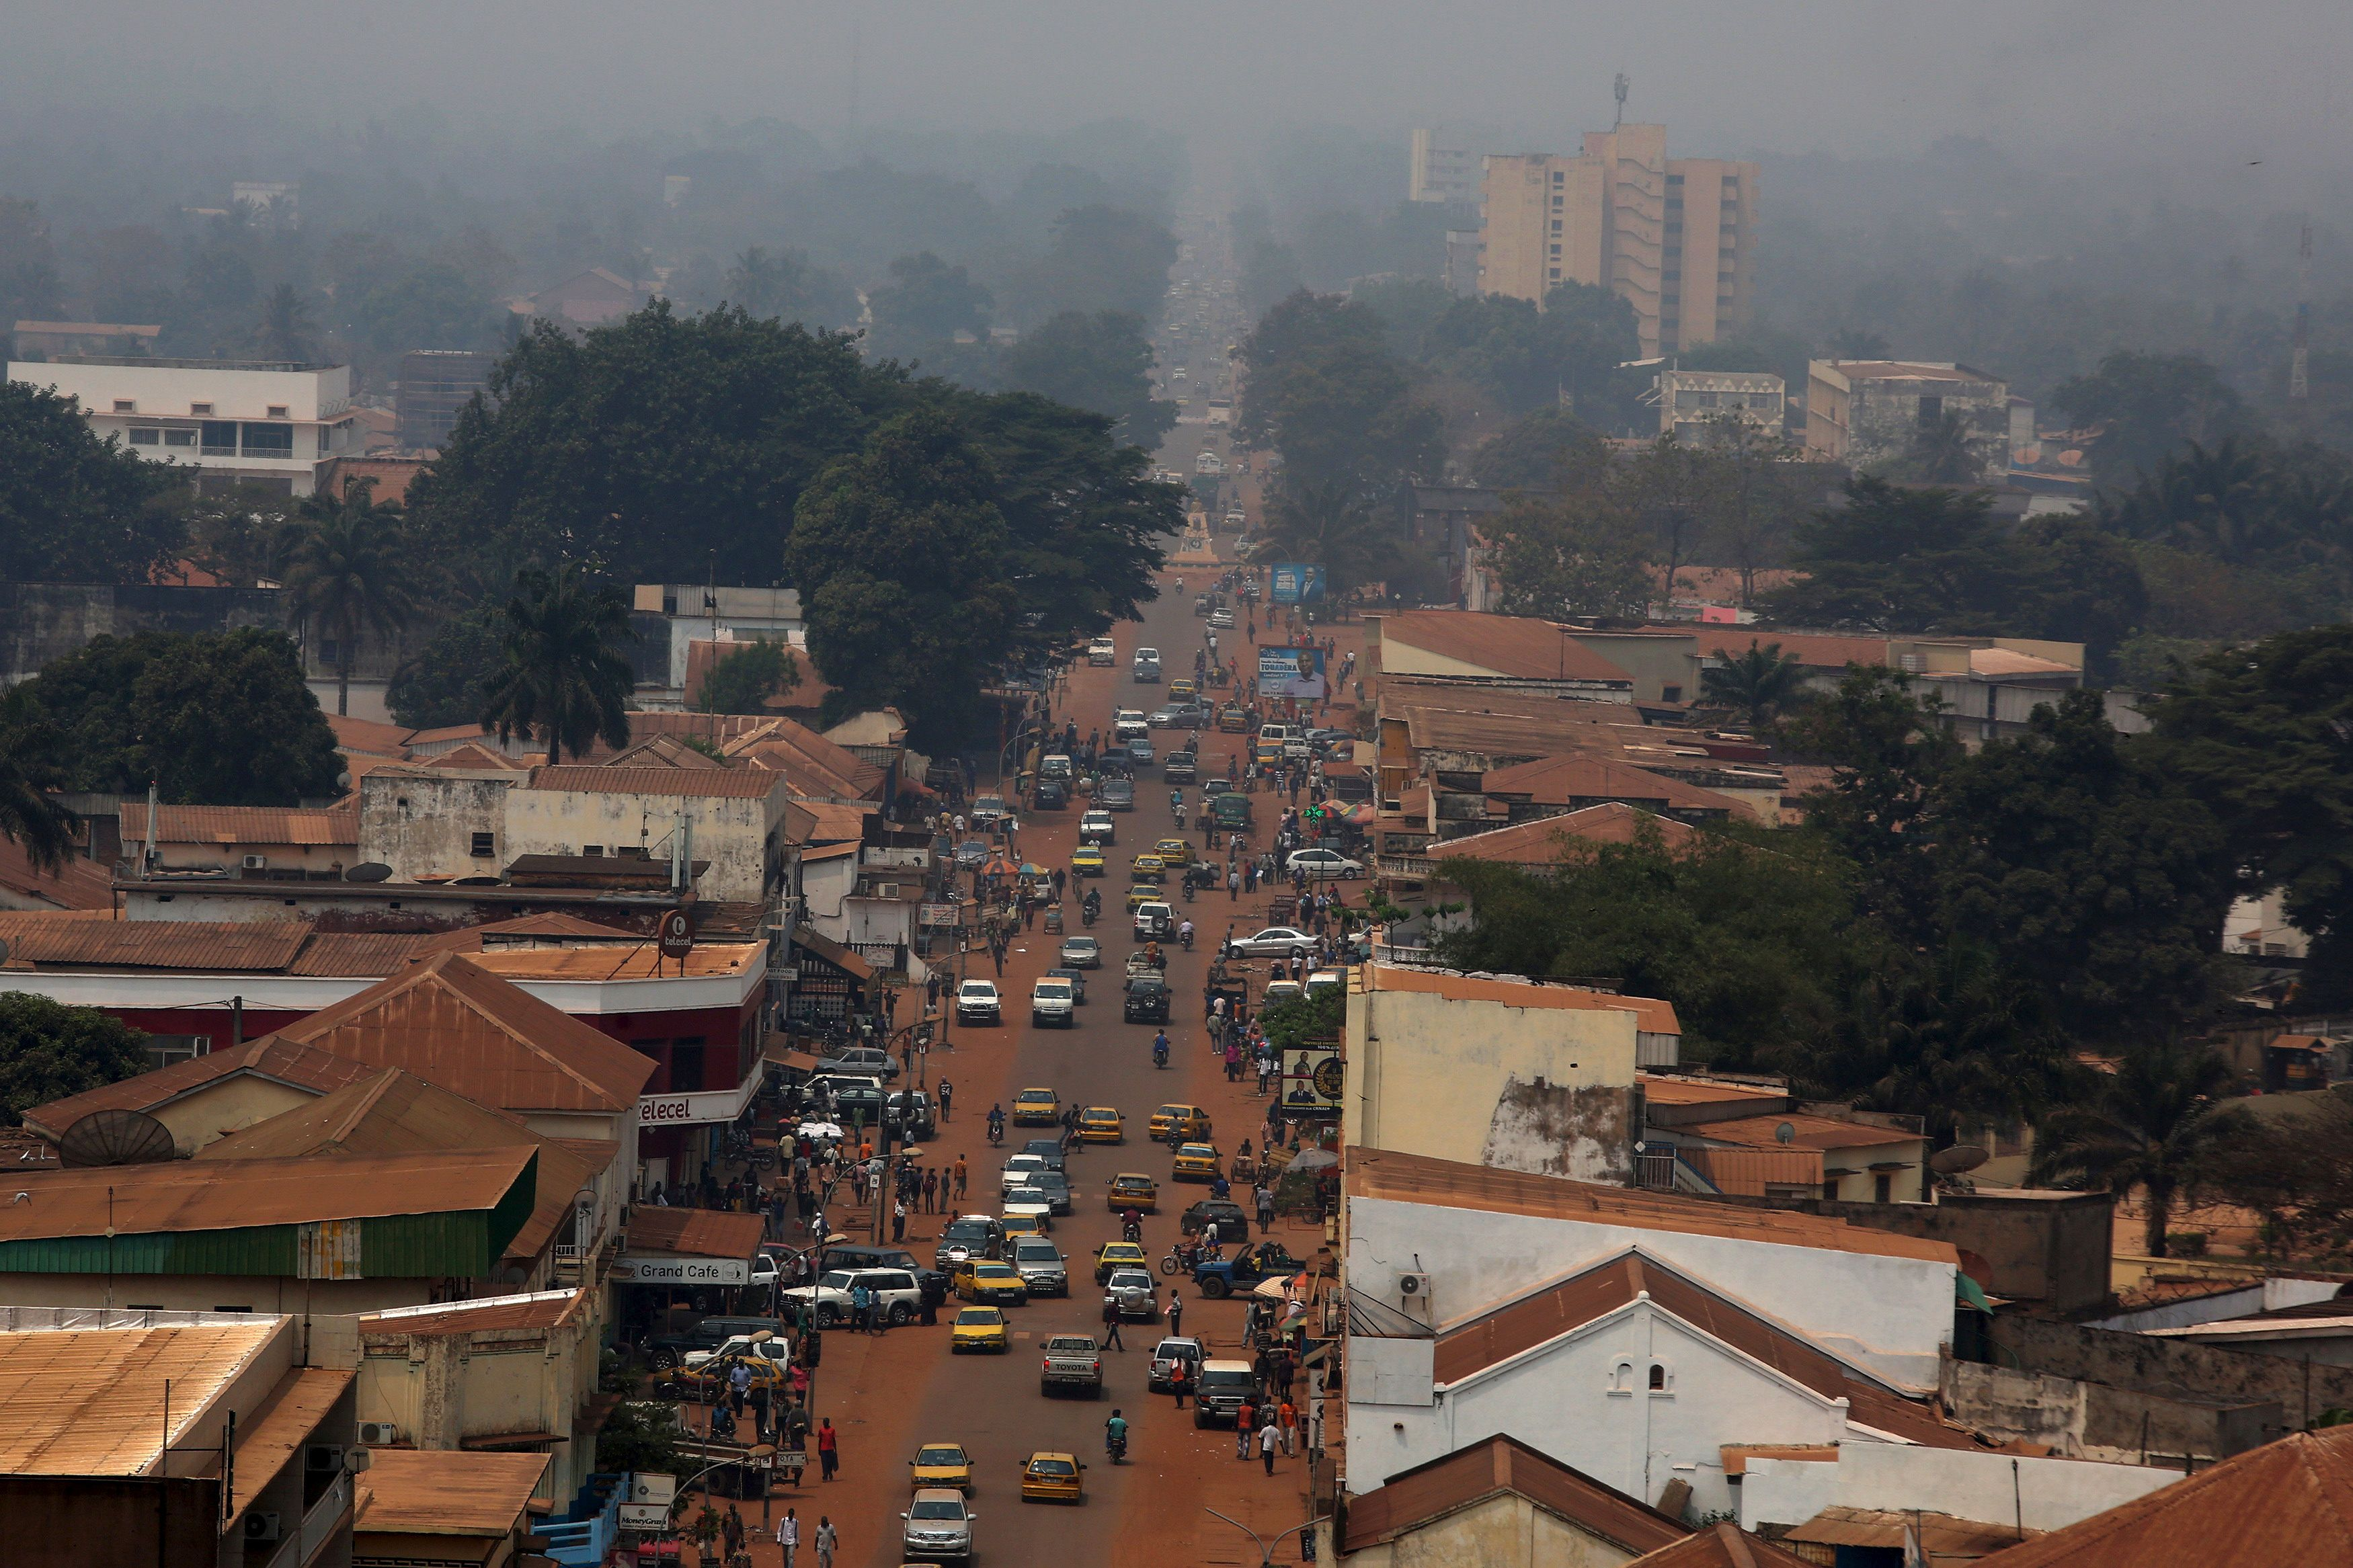 'Russia, Rwanda sent troops' to Central African Republic